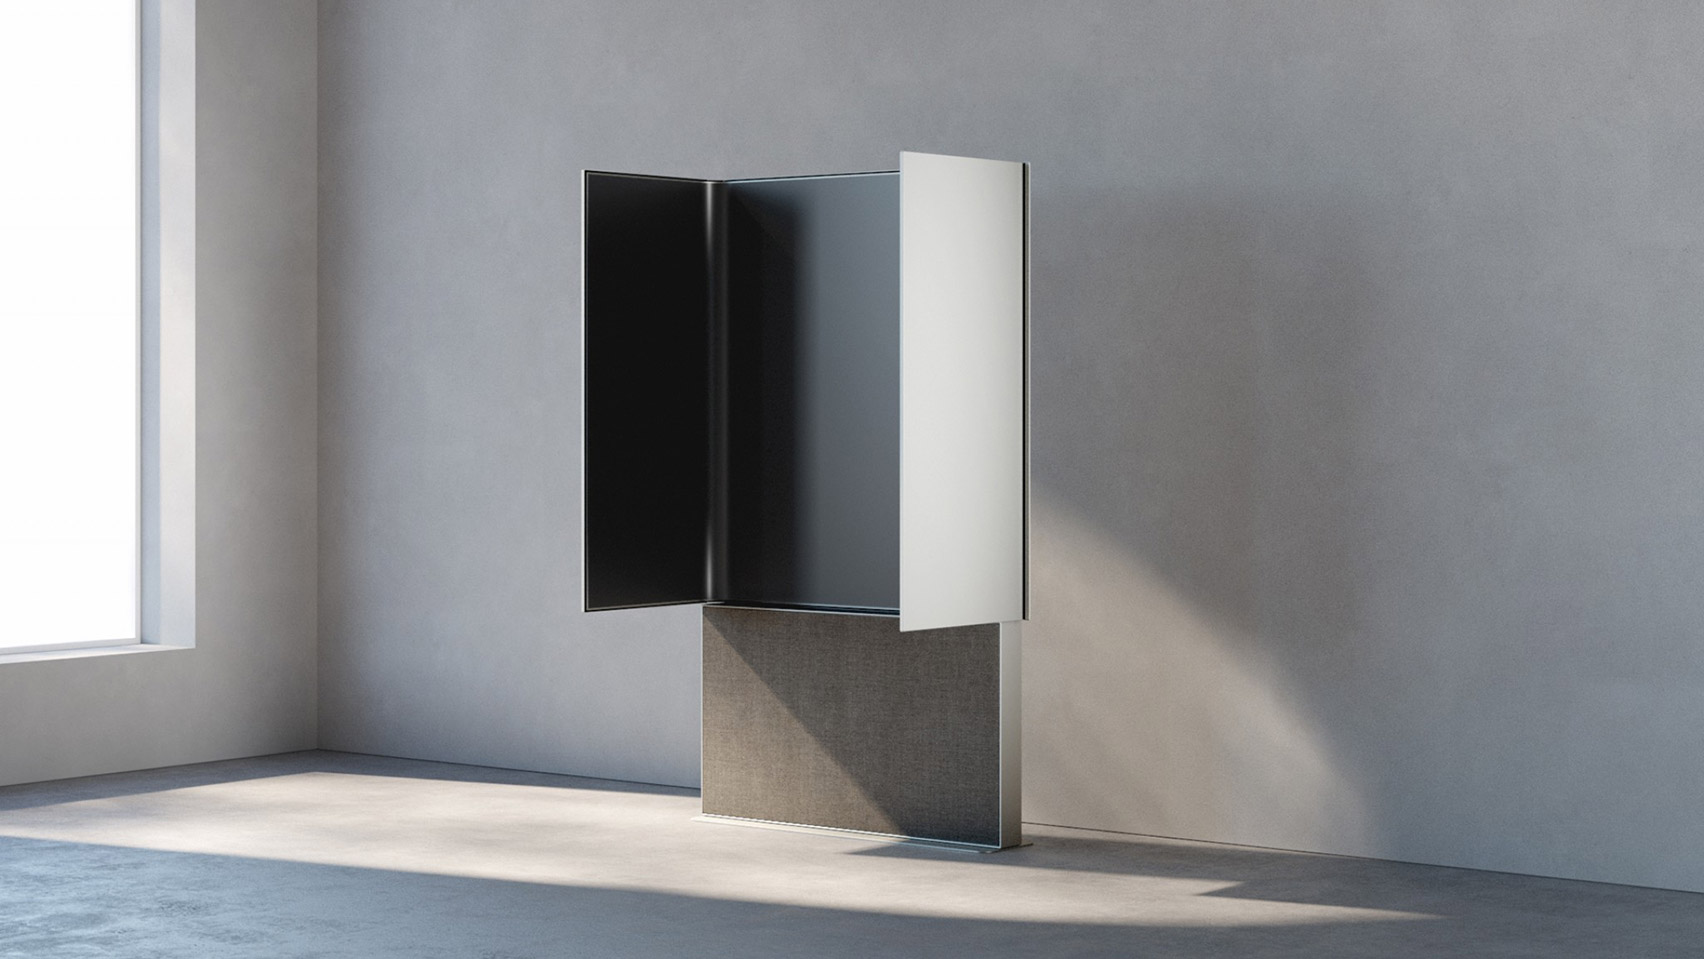 Monolith by Andre Cardoso foldable TV on the Dezeen and LG Display OLED Go shortlist